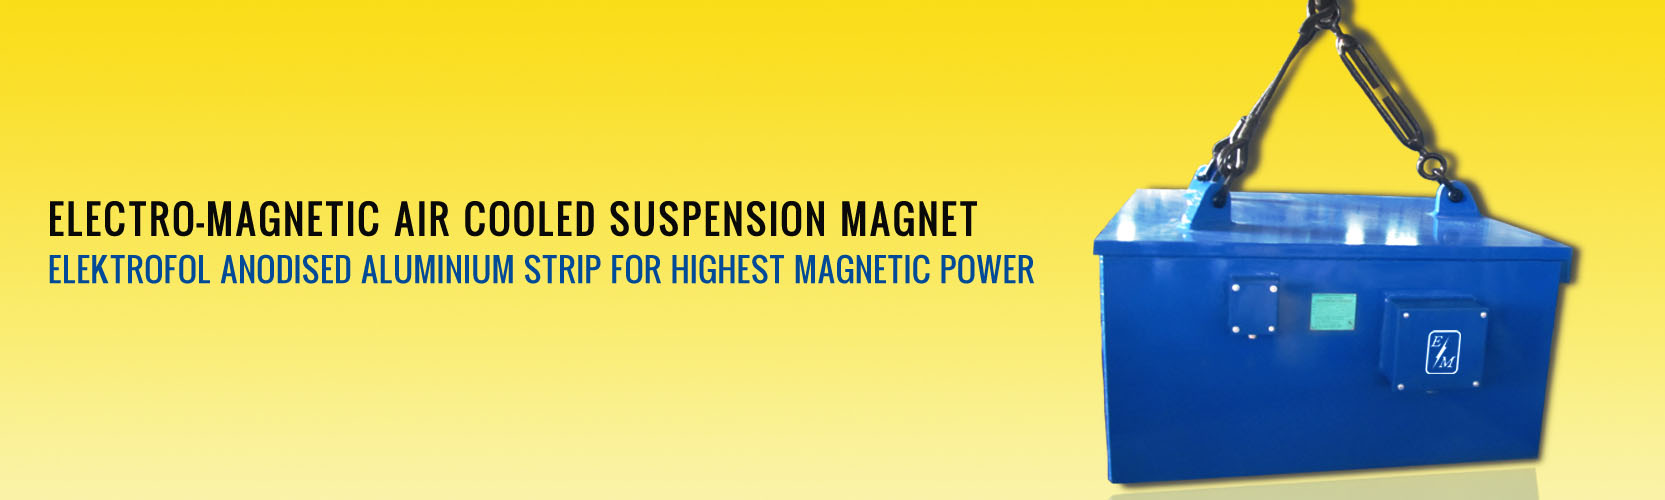 Suspension_Magnet_HDbanner